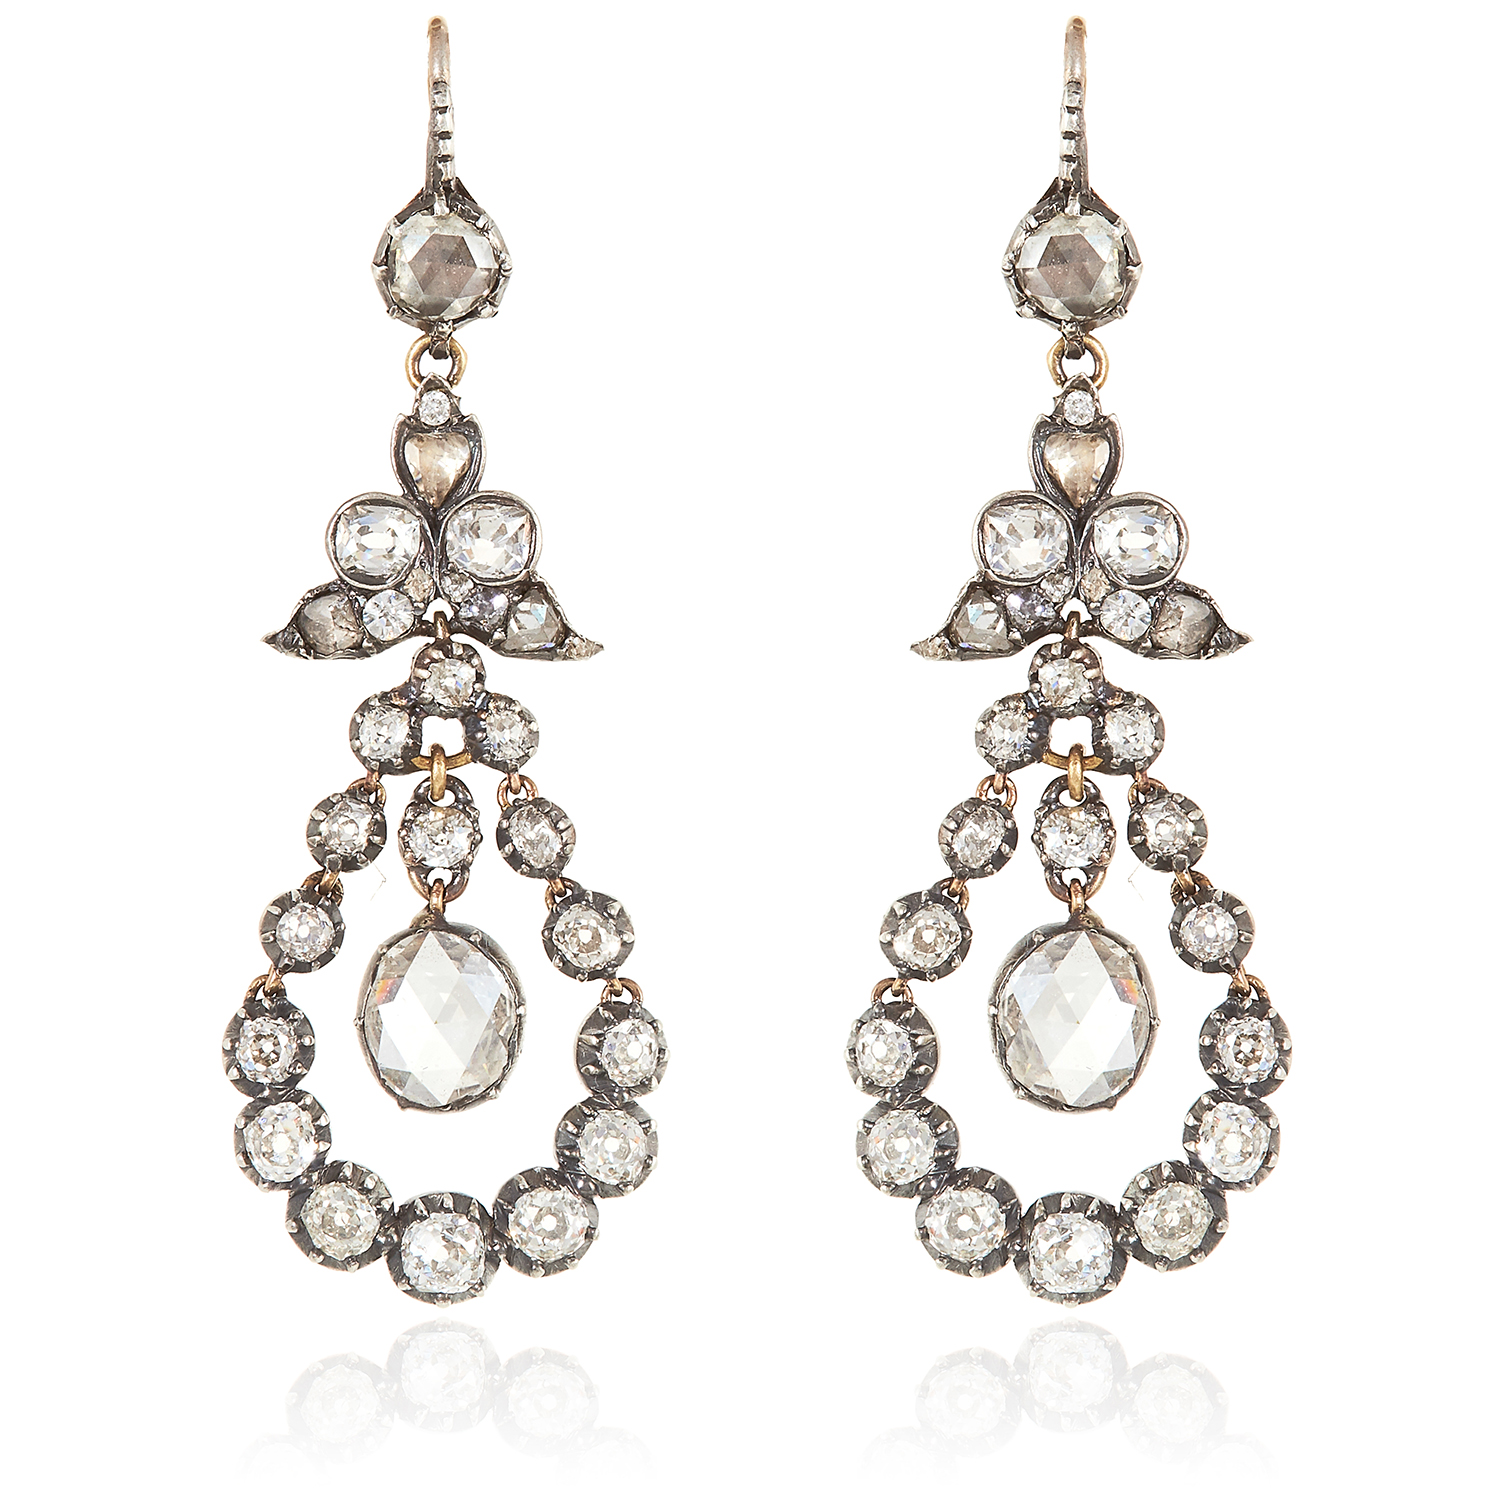 Los 45 - A PAIR OF ANTIQUE DIAMOND EARRINGS, 19TH CENTURY in yellow gold and silver, each set with a